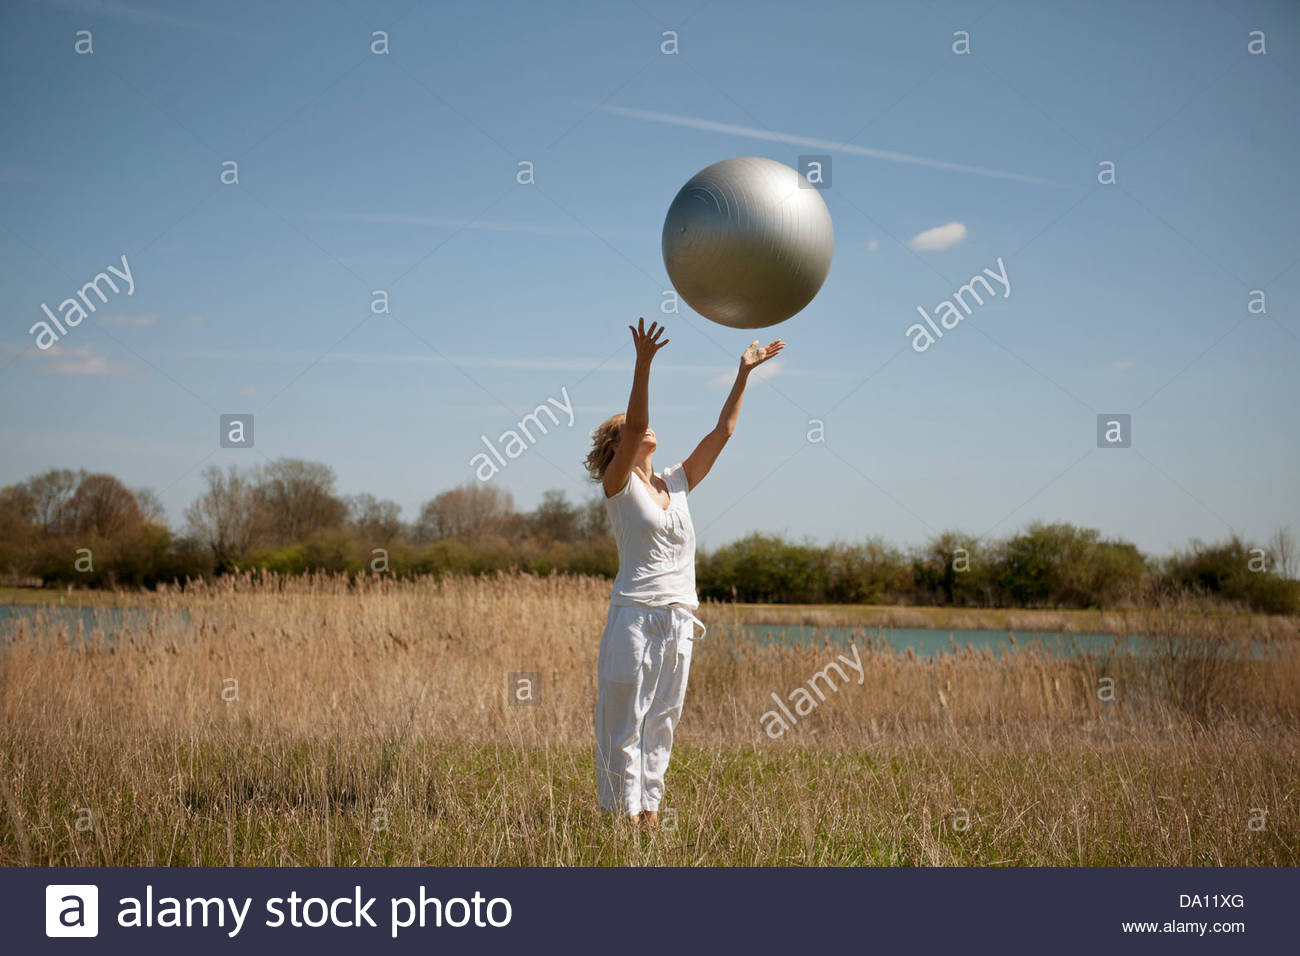 A mature woman catching an exercise ball - Stock Image